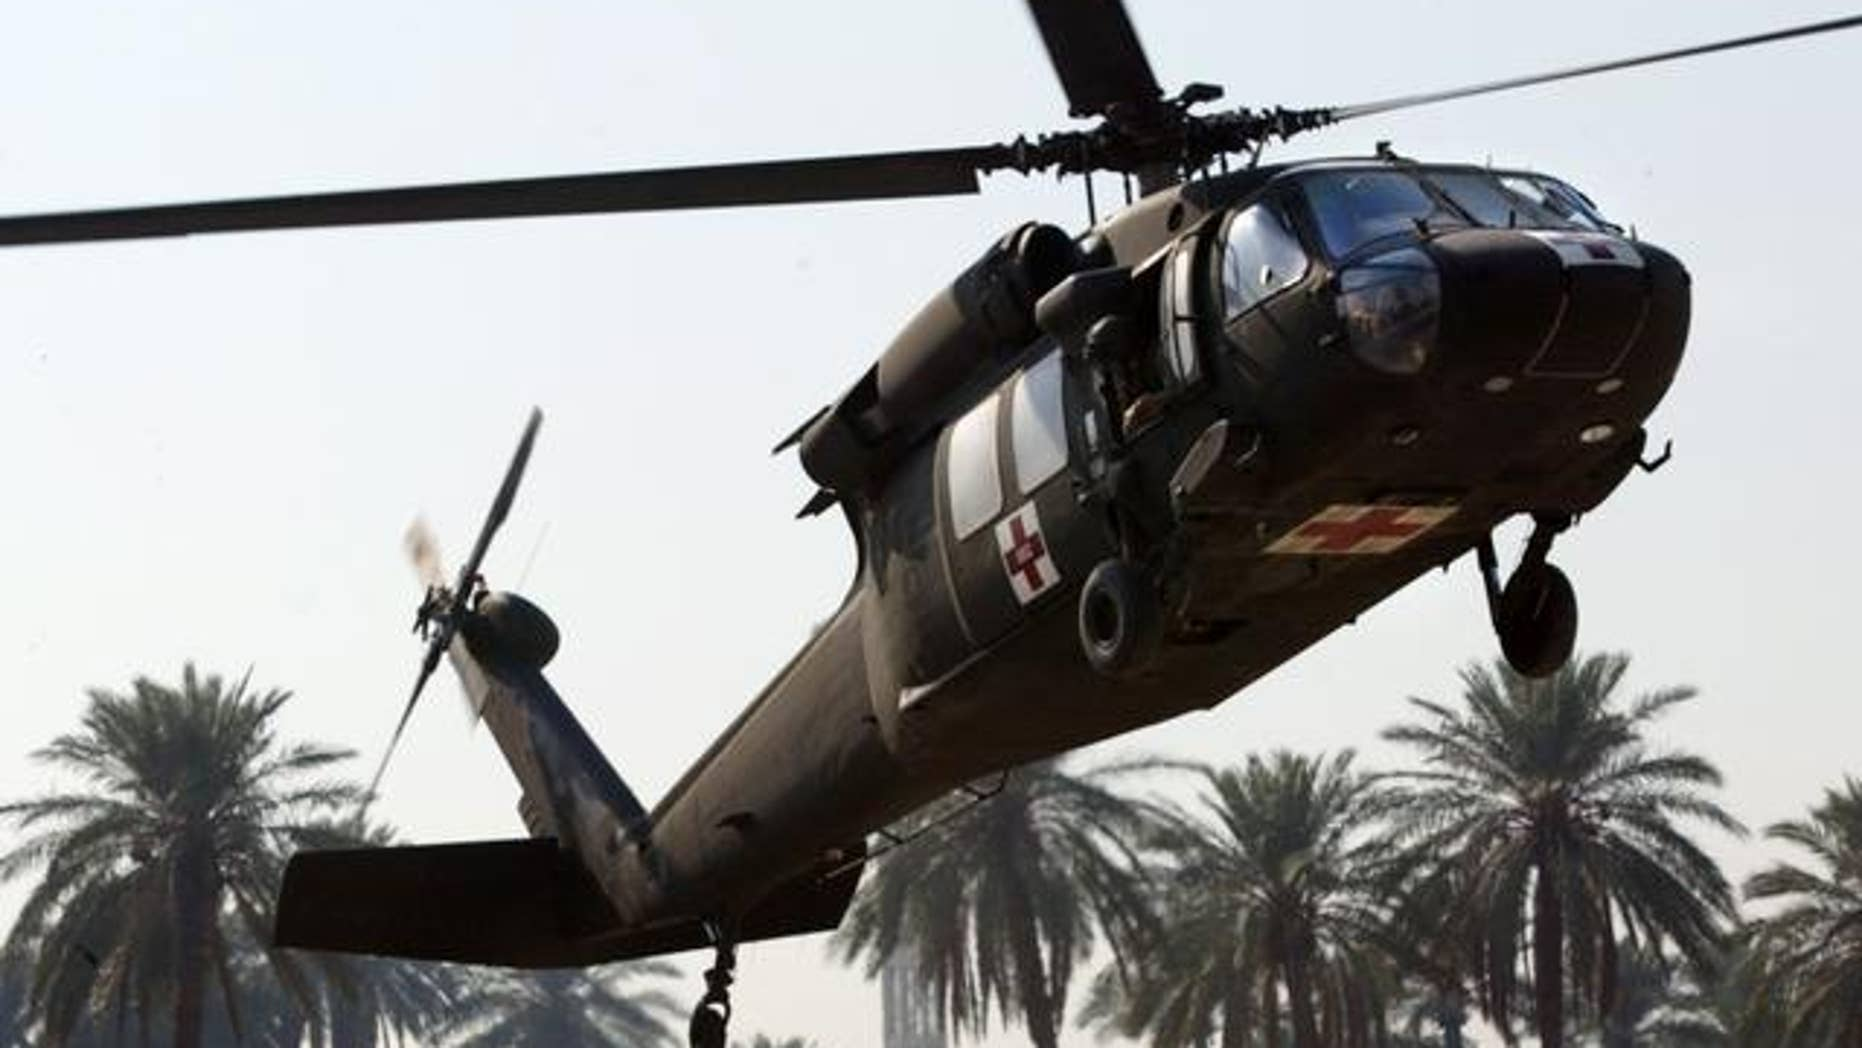 A U.S. Army Blackhawk medevac helicopter arrives with wounded soldiers at the 31st Combat Support Hospital in Baghdad, Iraq Tuesday, Nov. 9, 2004. The hospital is considered the busiest American combat trauma hospital in the world.(AP Photo/John Moore)